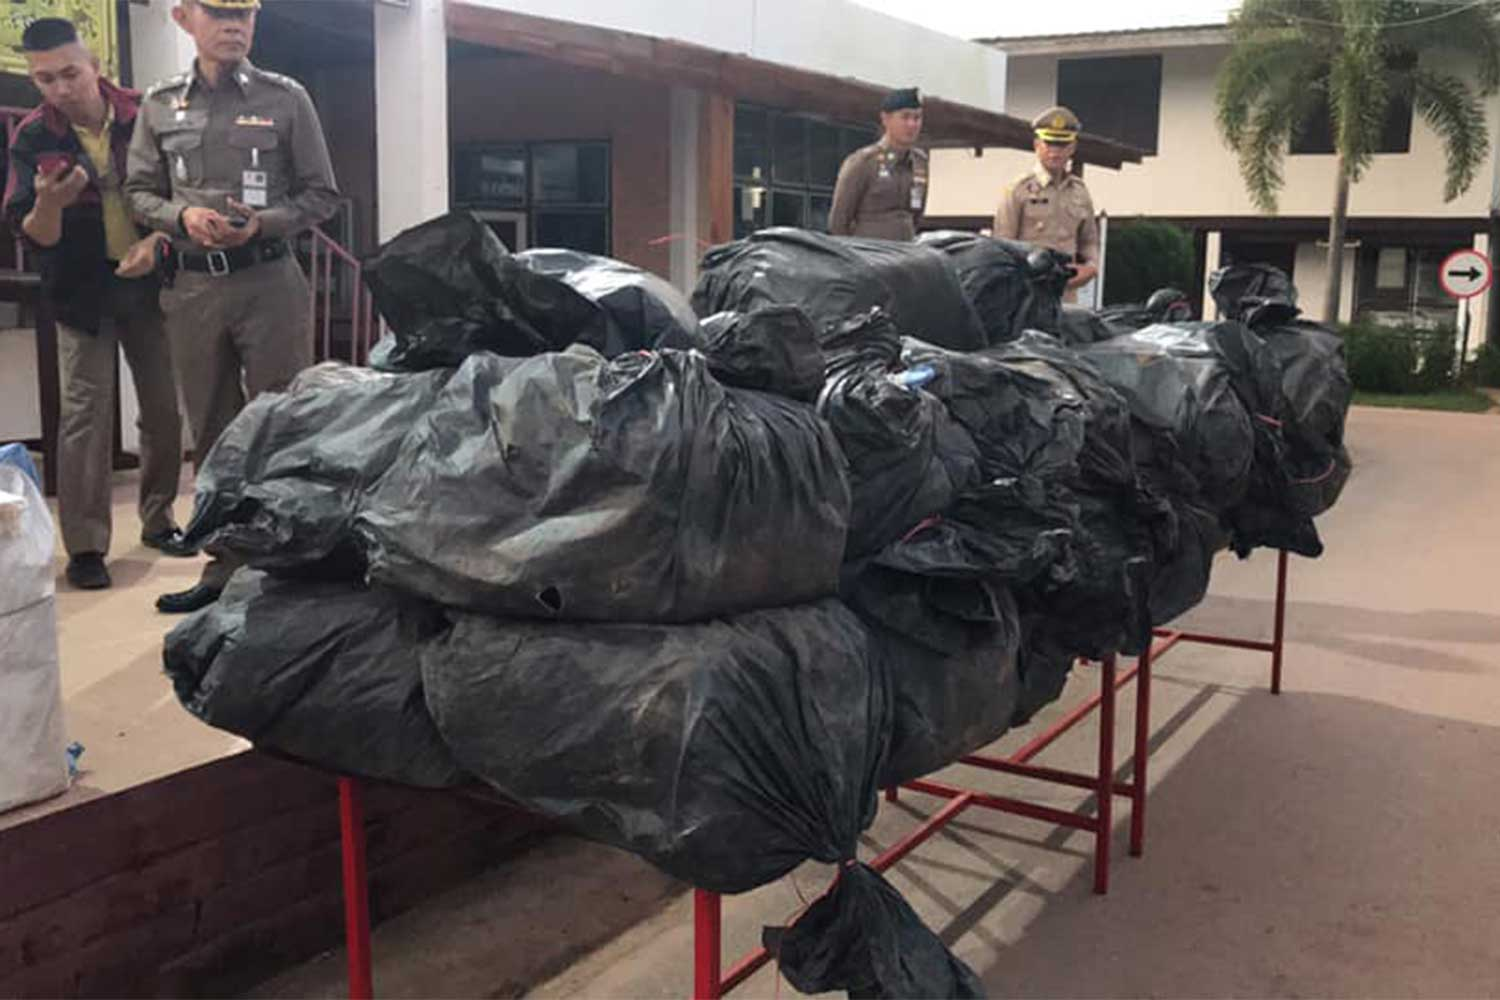 Plastic bags contain 8 million meth pills, found at a garbage dump, on display at Dan Sai police station in Loei province on Monday. (Photo from @armyprcenter Facebook page)